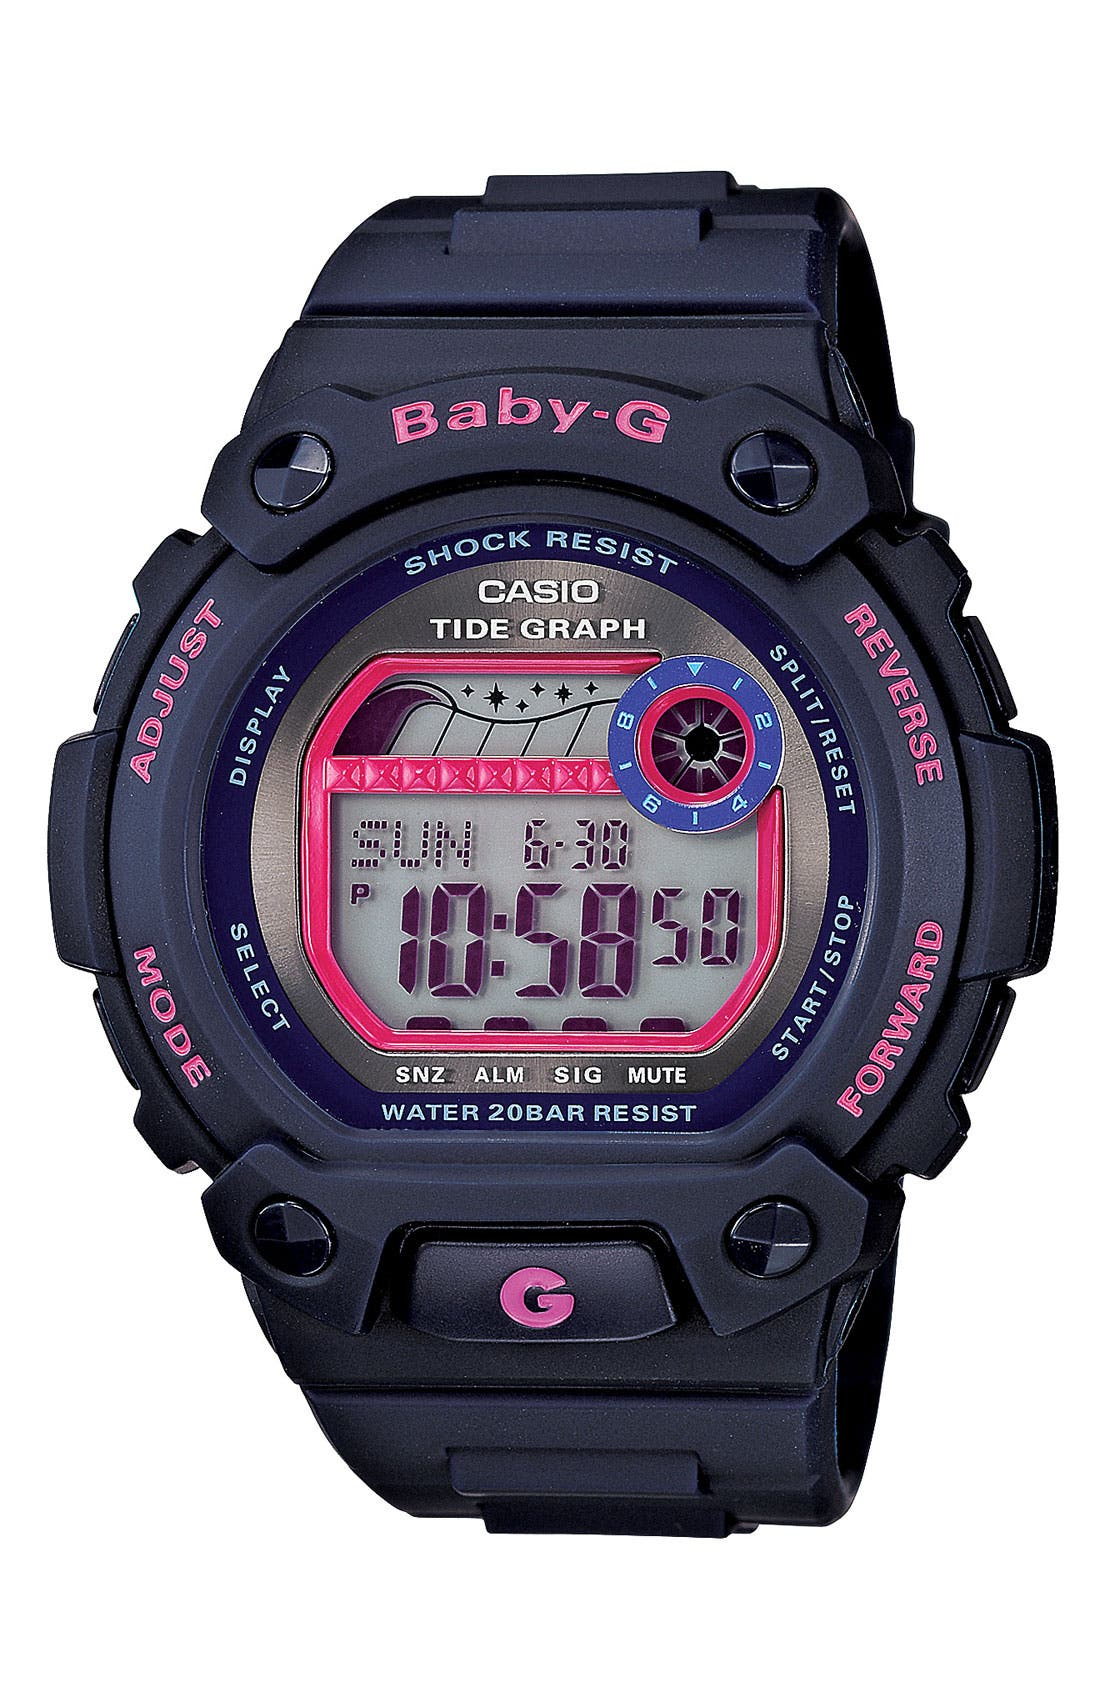 Main Image - Baby-G 'Tidegraph' Digital Watch, 44mm x 42mm